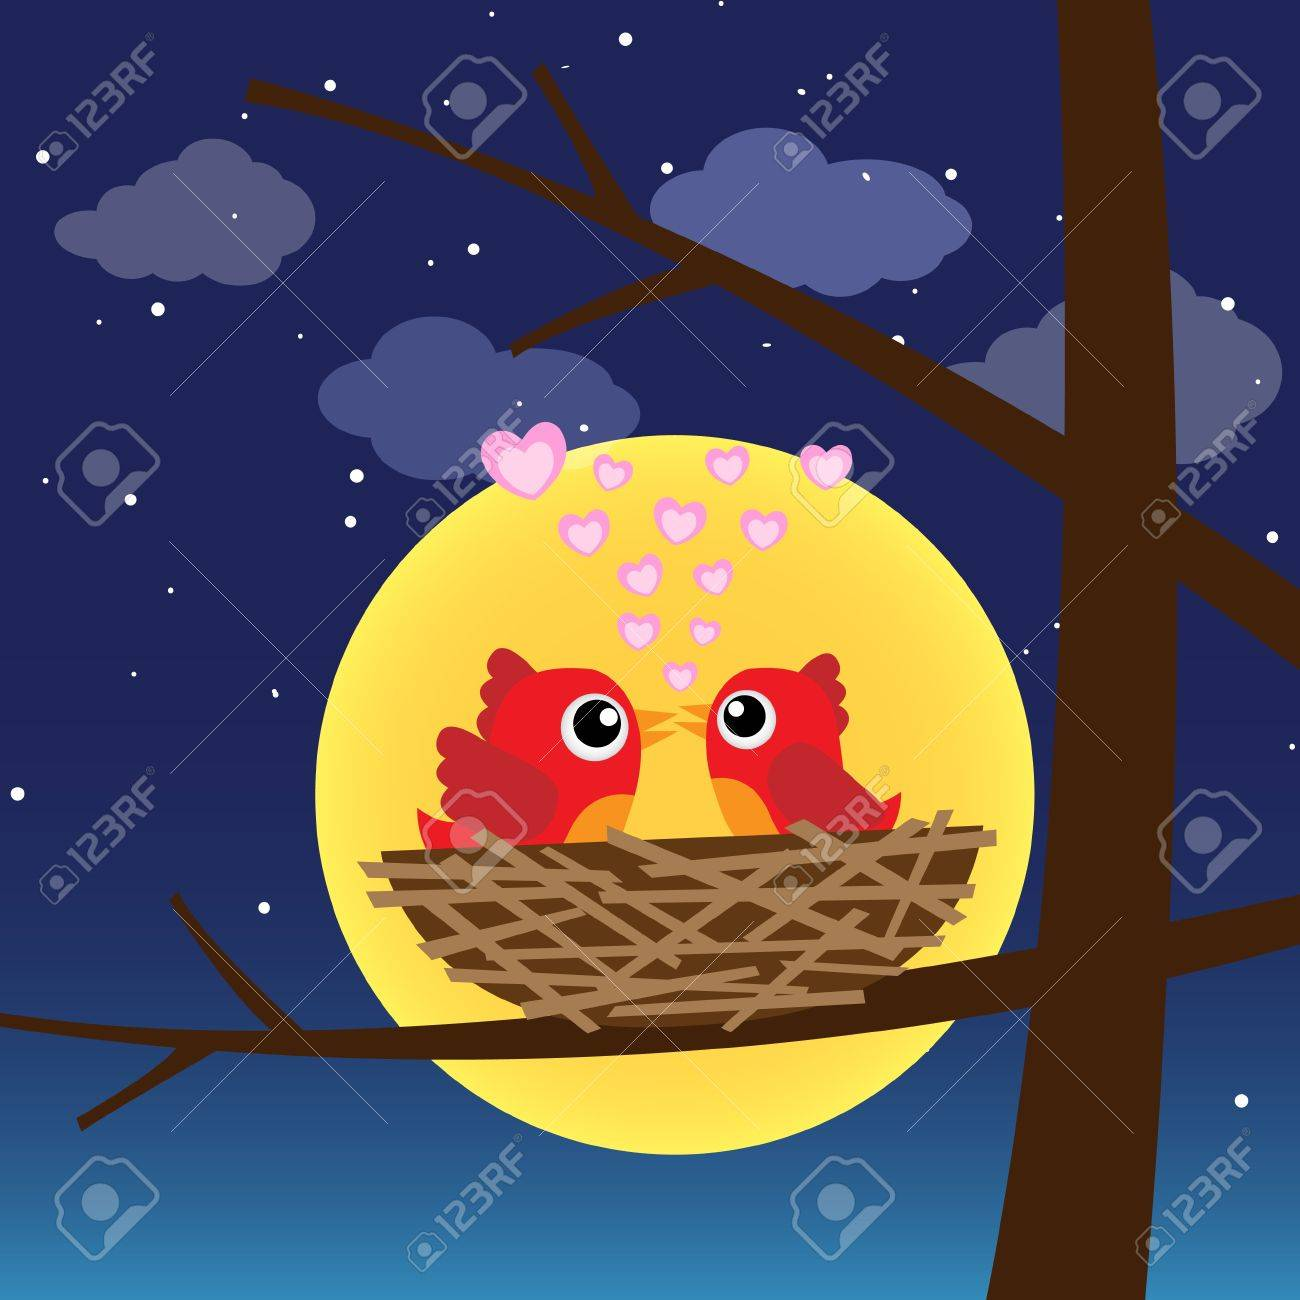 Birds in love at night Stock Vector - 12816884